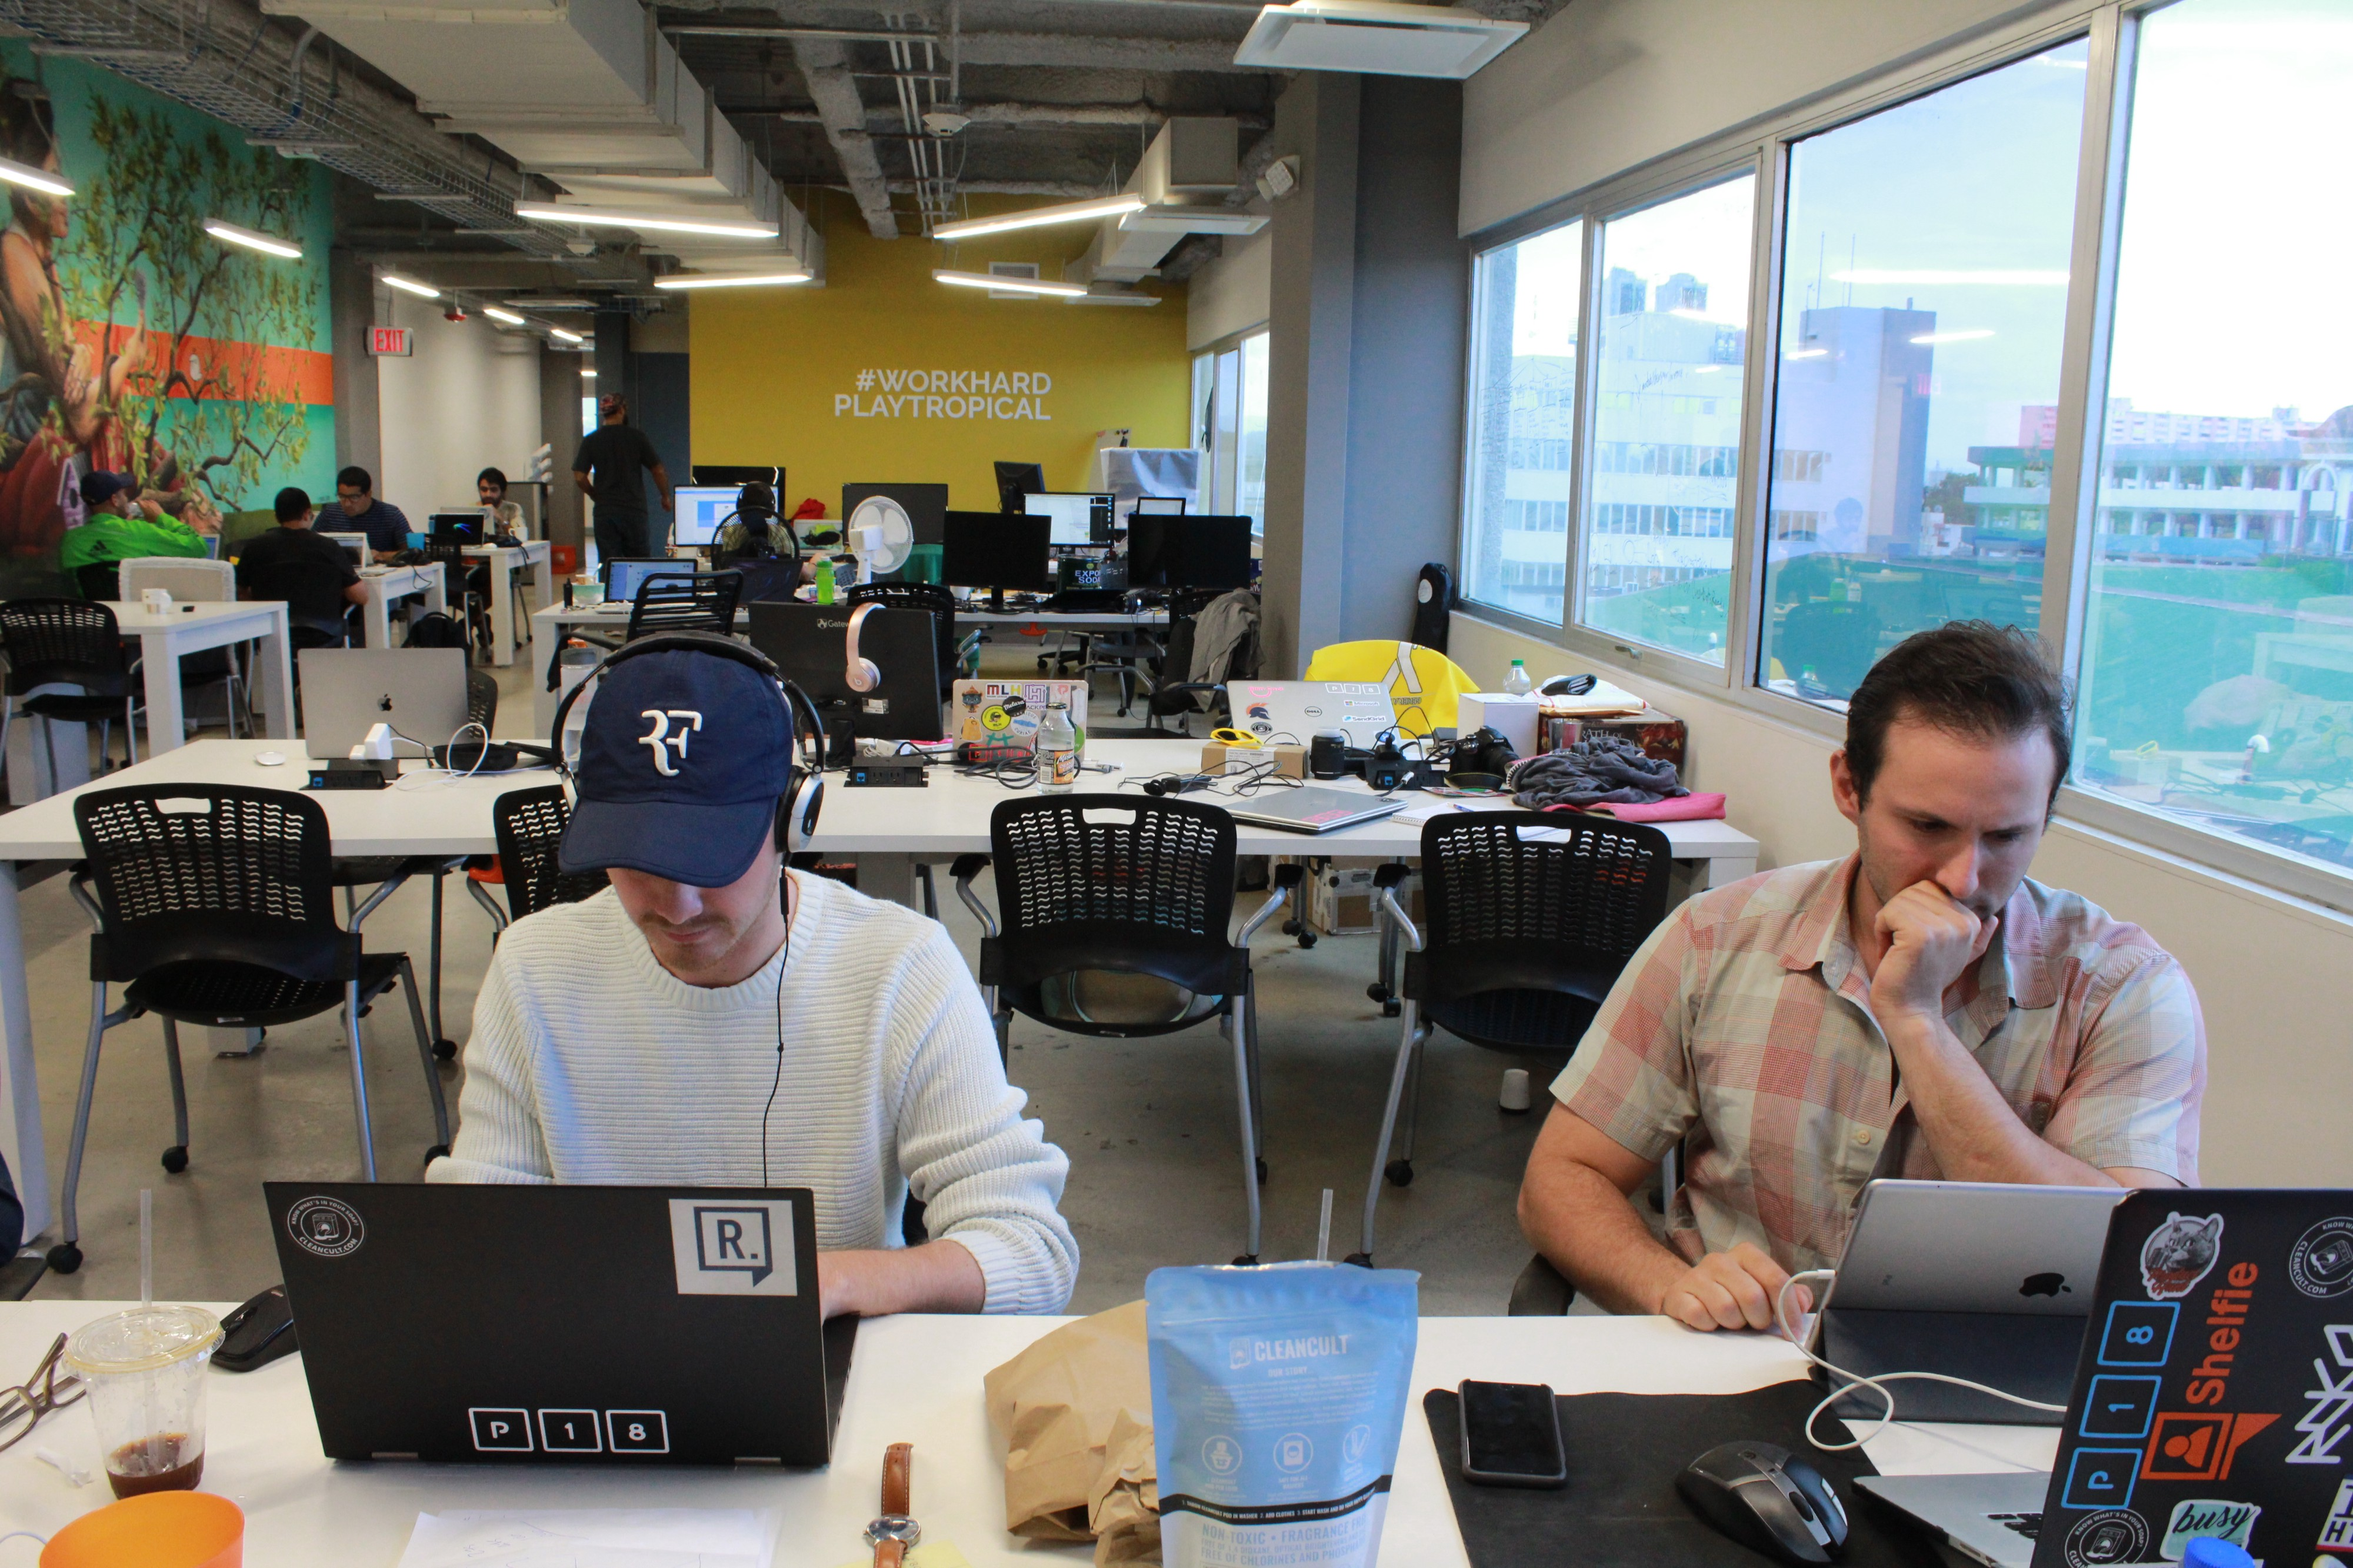 These startups are looking for interns and employees